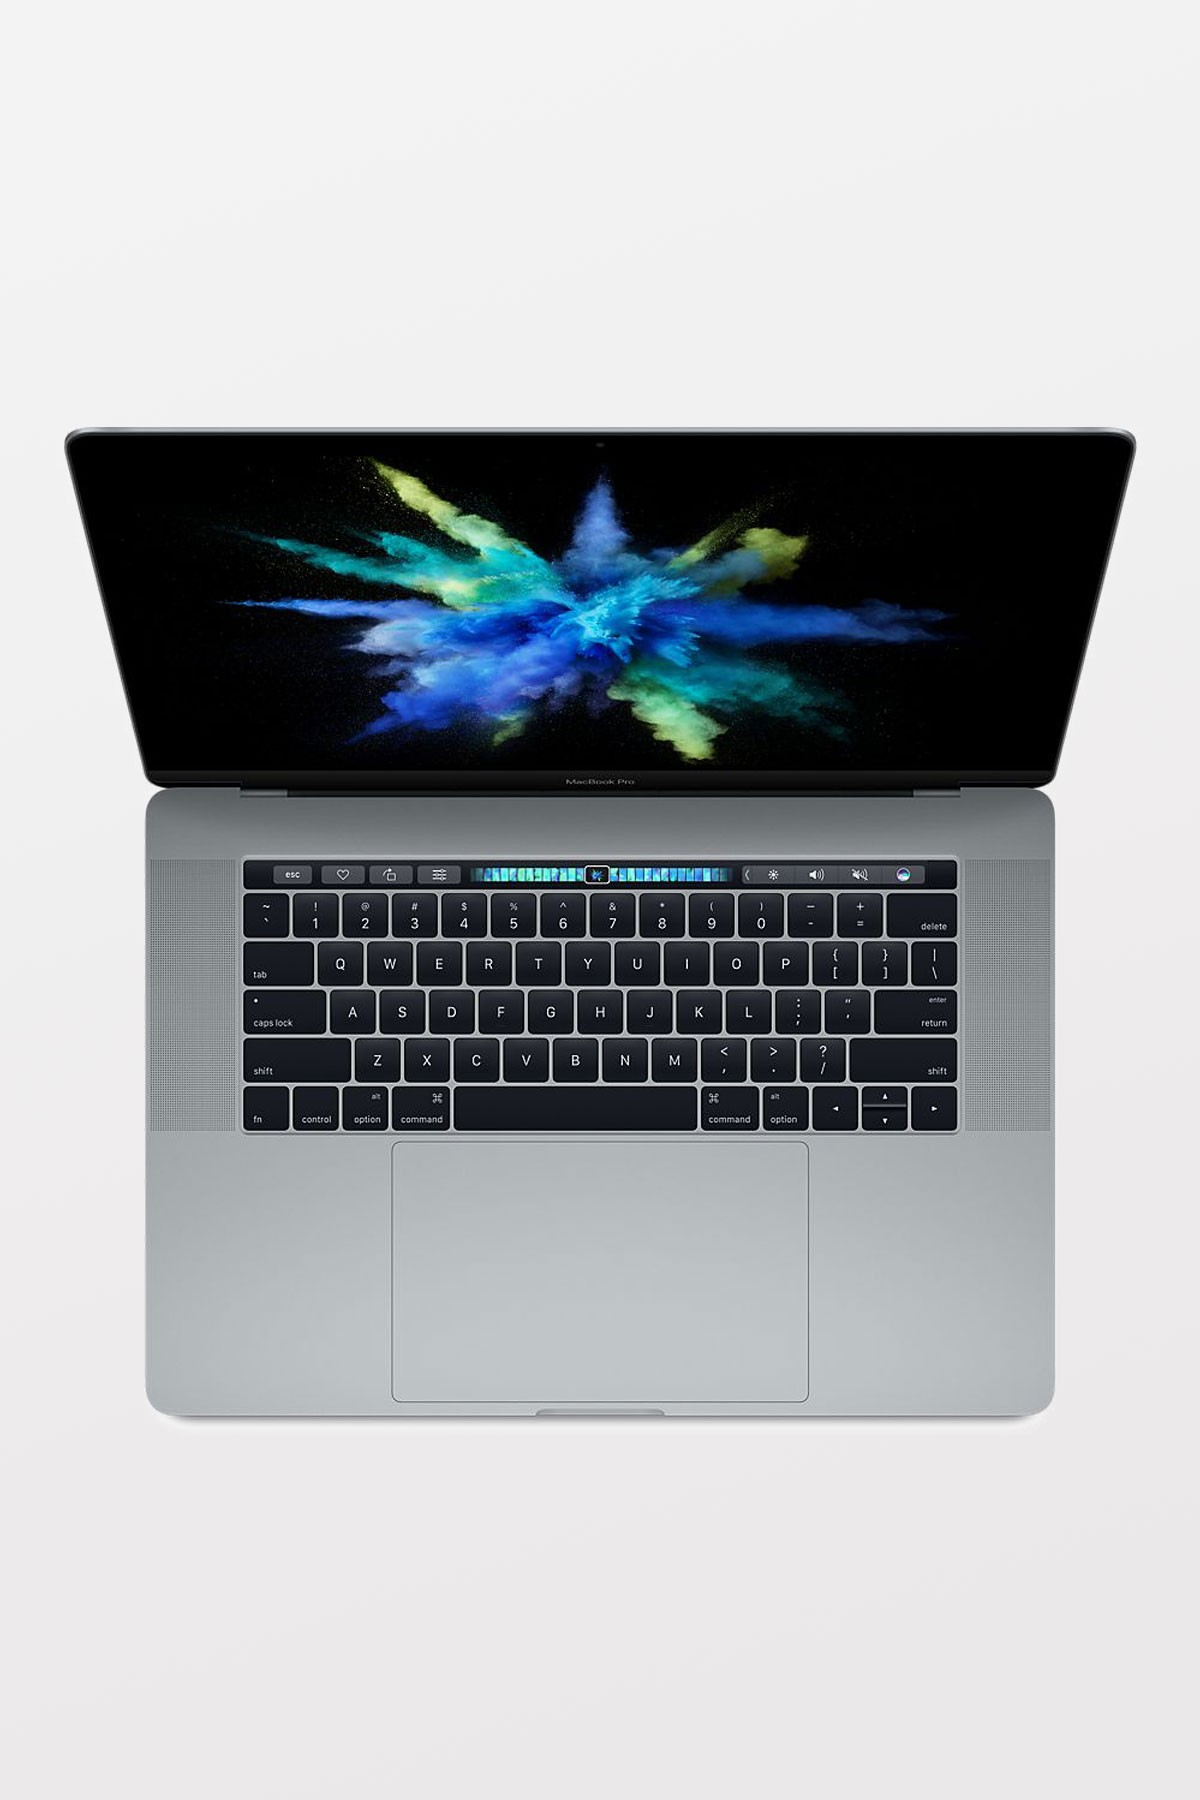 Apple MacBook Pro with Touch Bar 15-inch (2.6GHz i7/16GB/512GB Flash/Radeon Pro 560x 4GB) - Space Grey